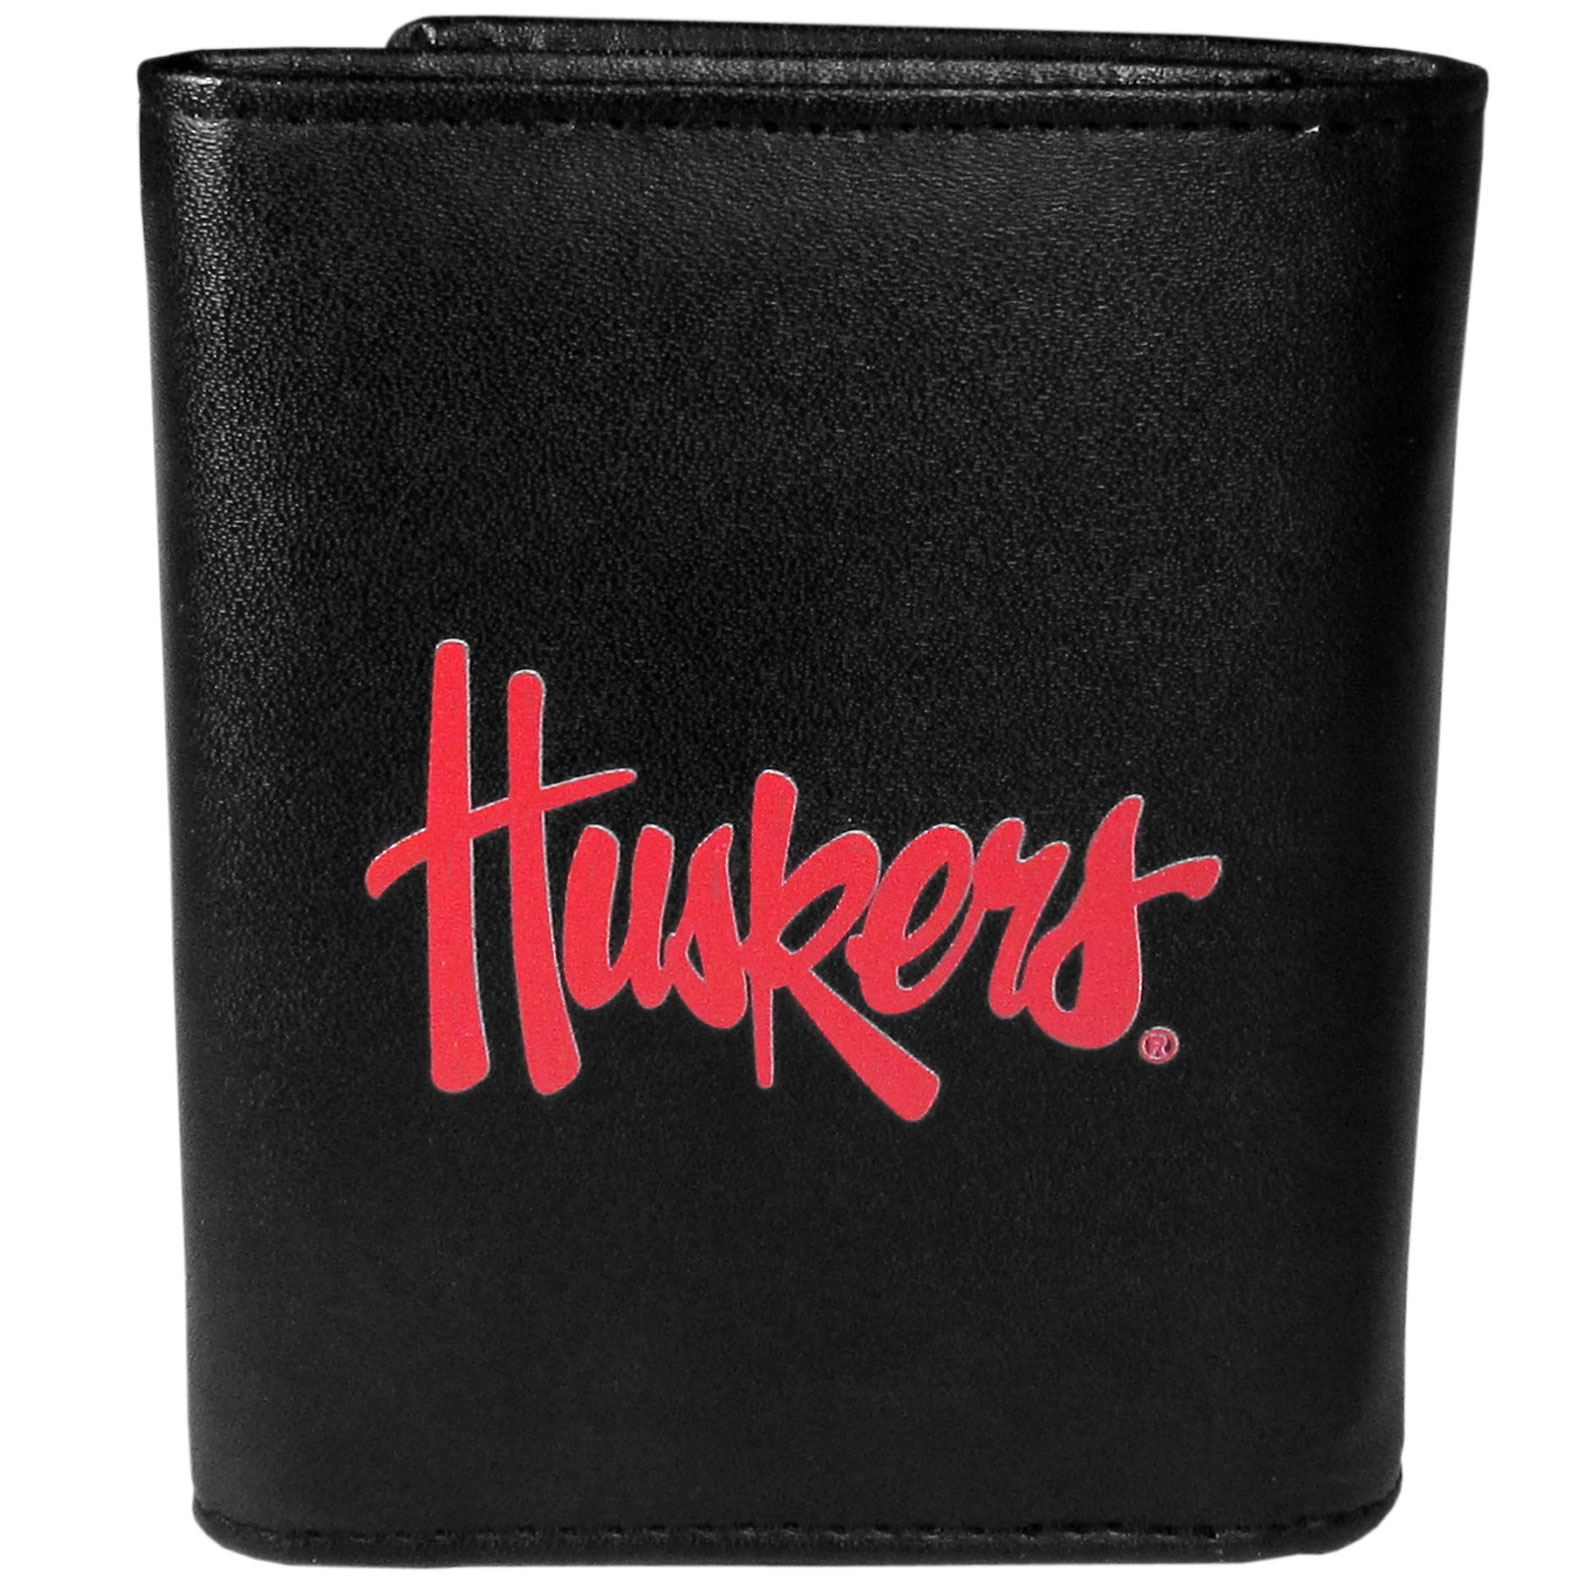 Nebraska Cornhuskers Leather Tri-fold Wallet, Large Logo - Our classic fine leather tri-fold wallet is meticulously crafted with genuine leather that will age beautifully so you will have a quality wallet for years to come. This is fan apparel at its finest. The wallet is packed with organizational  features; lots of credit card slots, large billfold pocket, and a window ID slot. The front of the wallet features an extra large Nebraska Cornhuskers printed logo.